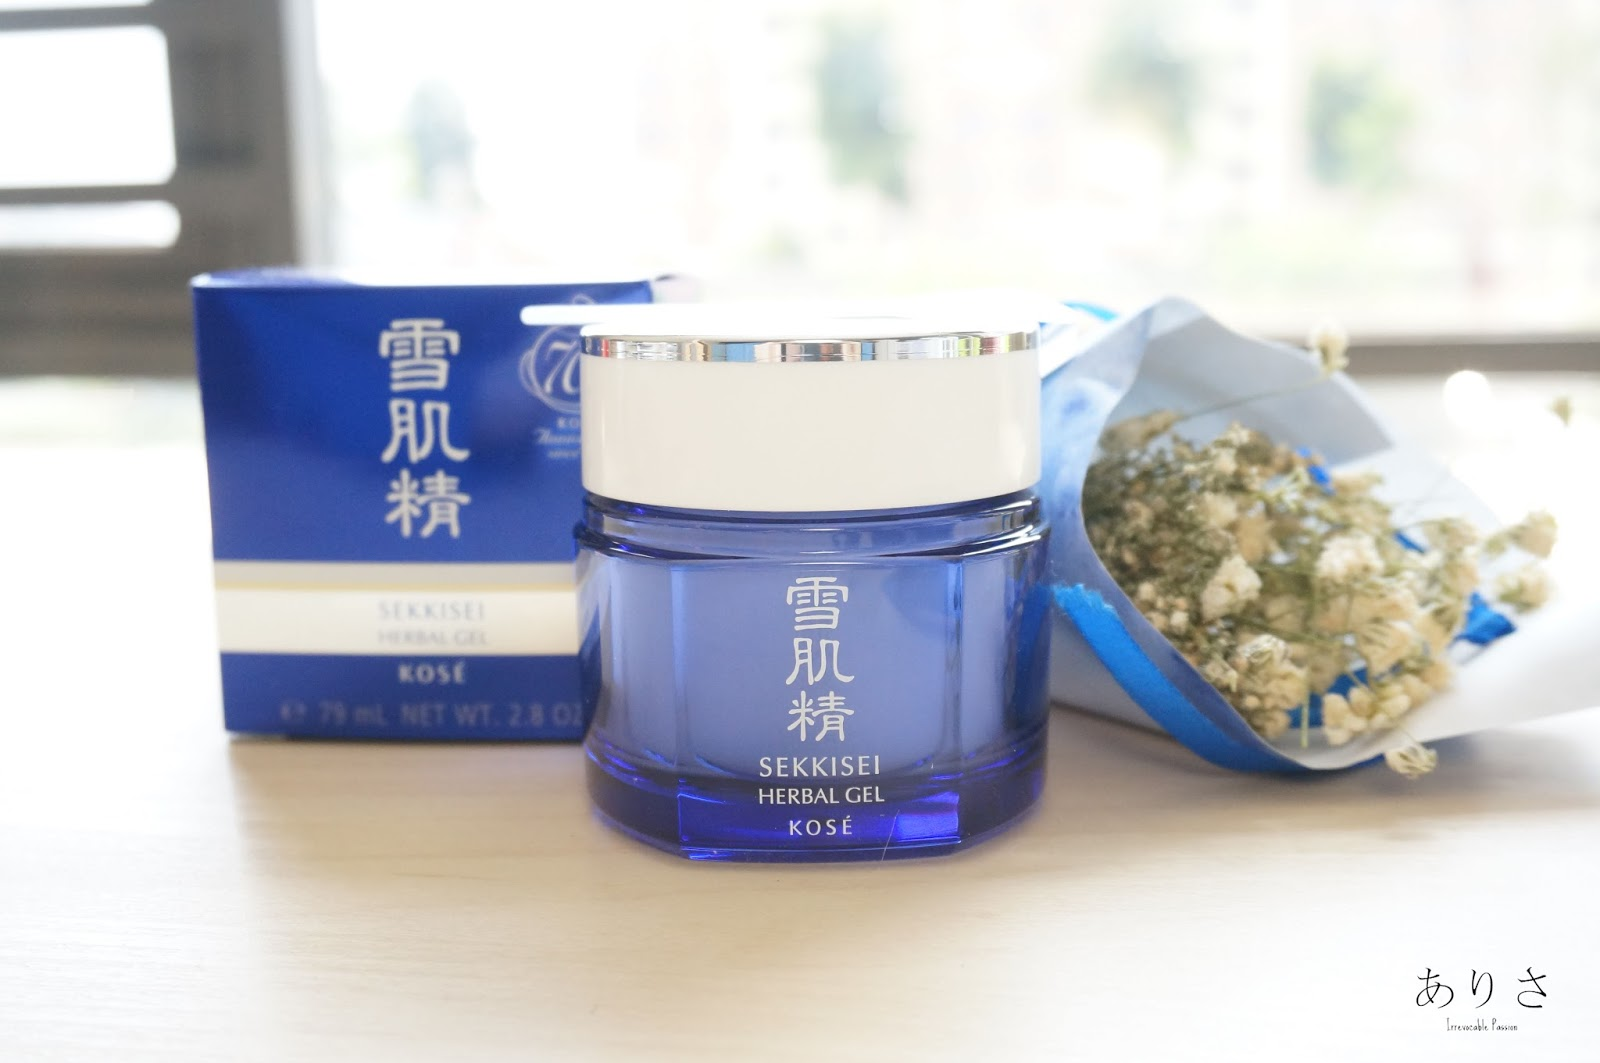 Kos Sekkisei Herbal Gel Review Welcome Kose Whitening Cream Jepang Not Their Best Selling Lotion But A Brand New Revolutionized Miracle Jar That Would Save You Half Your Usual Skincare Regime Time